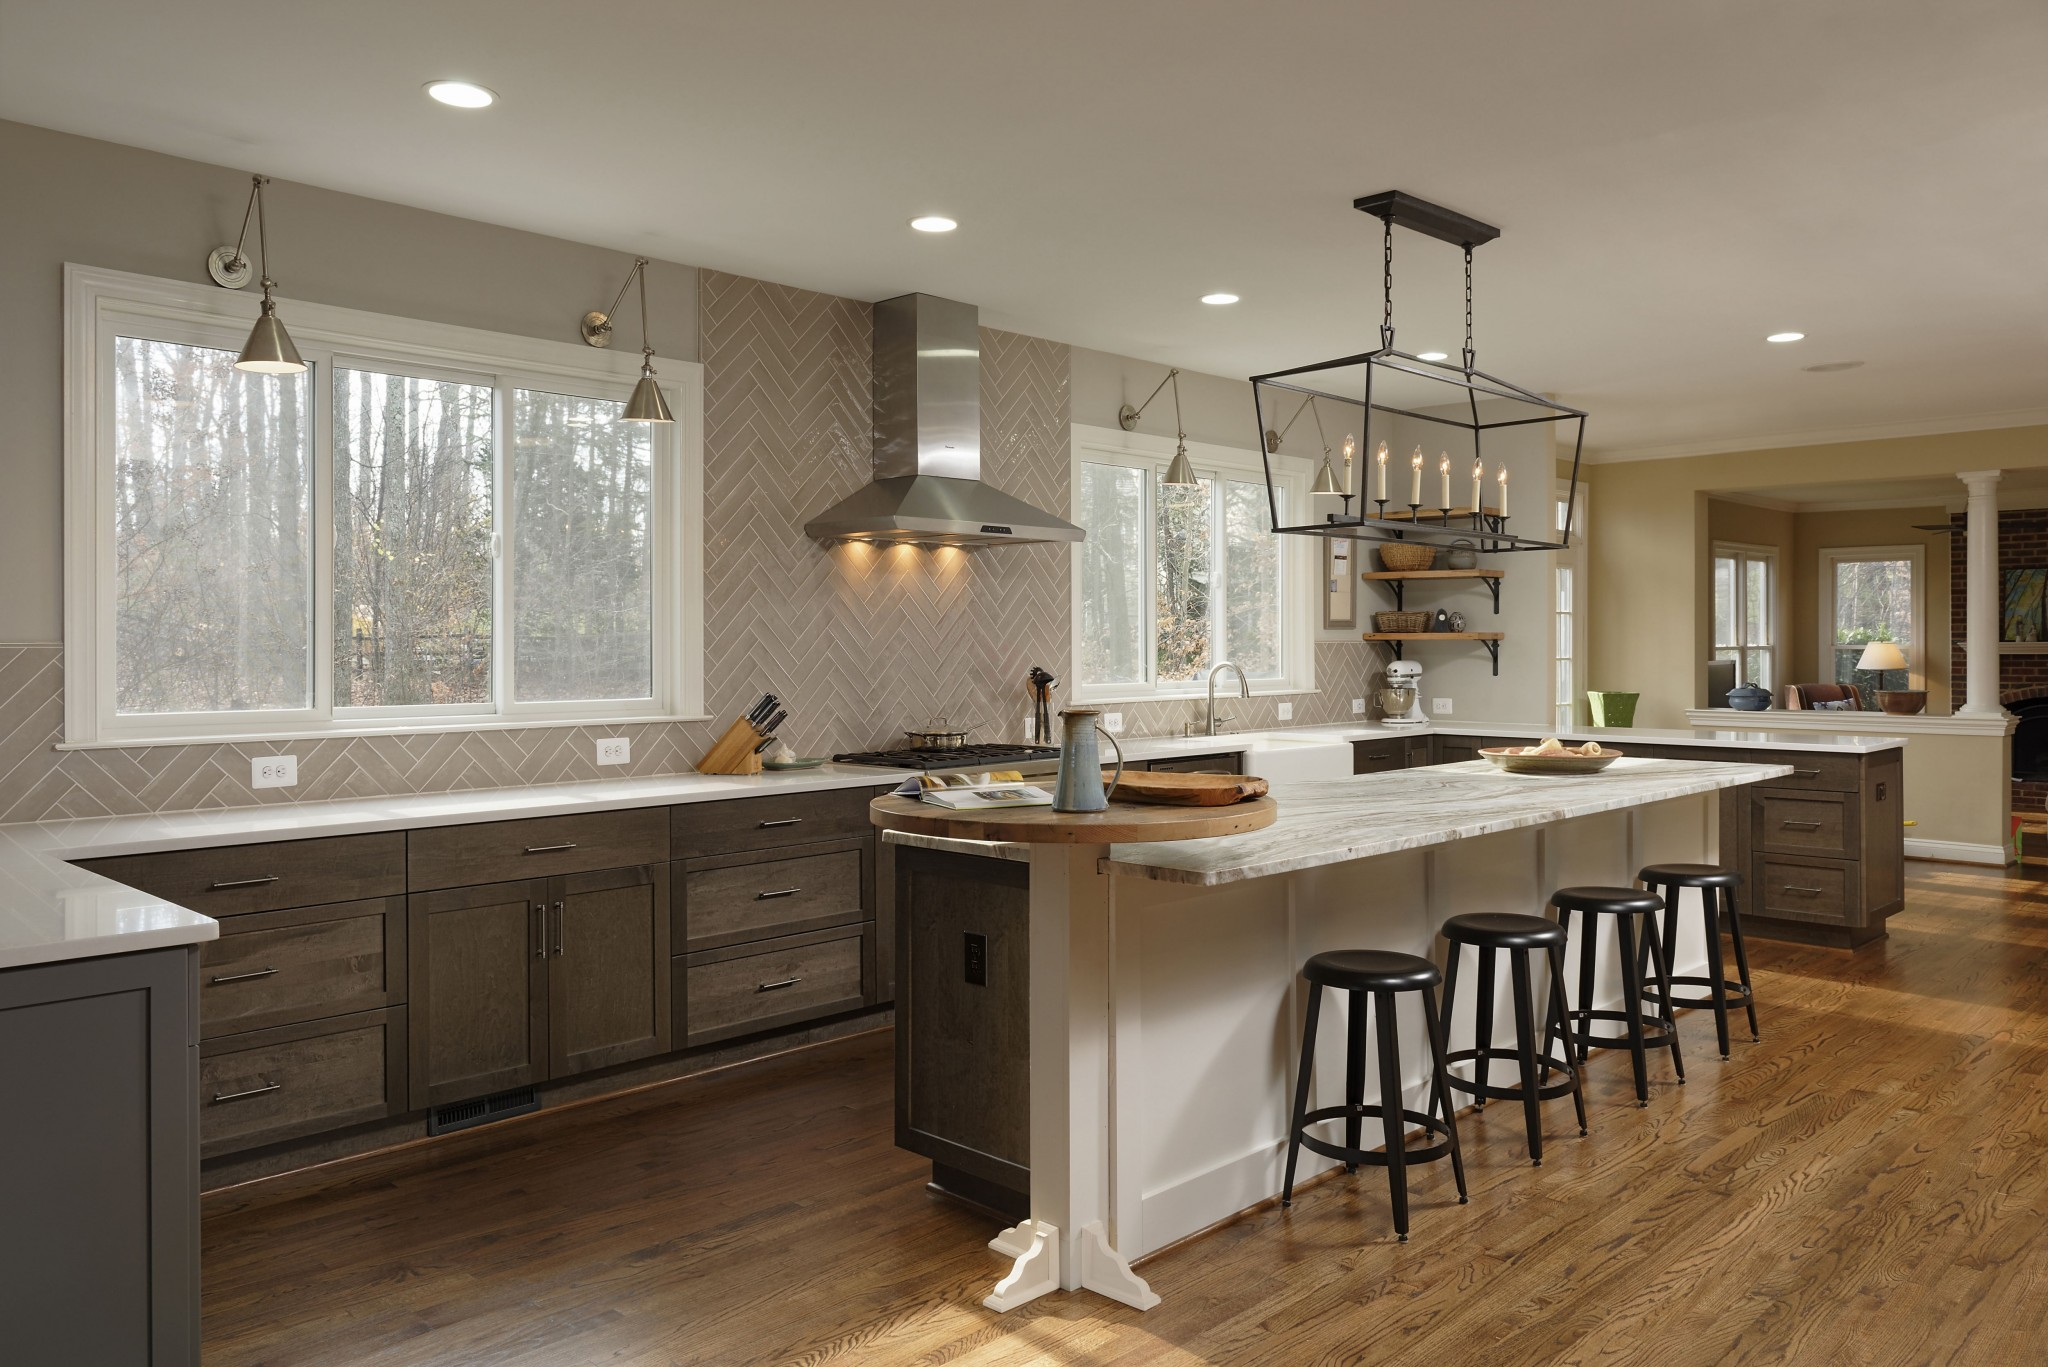 The Smart Choice For Home Remodeling In VA, MD & DC